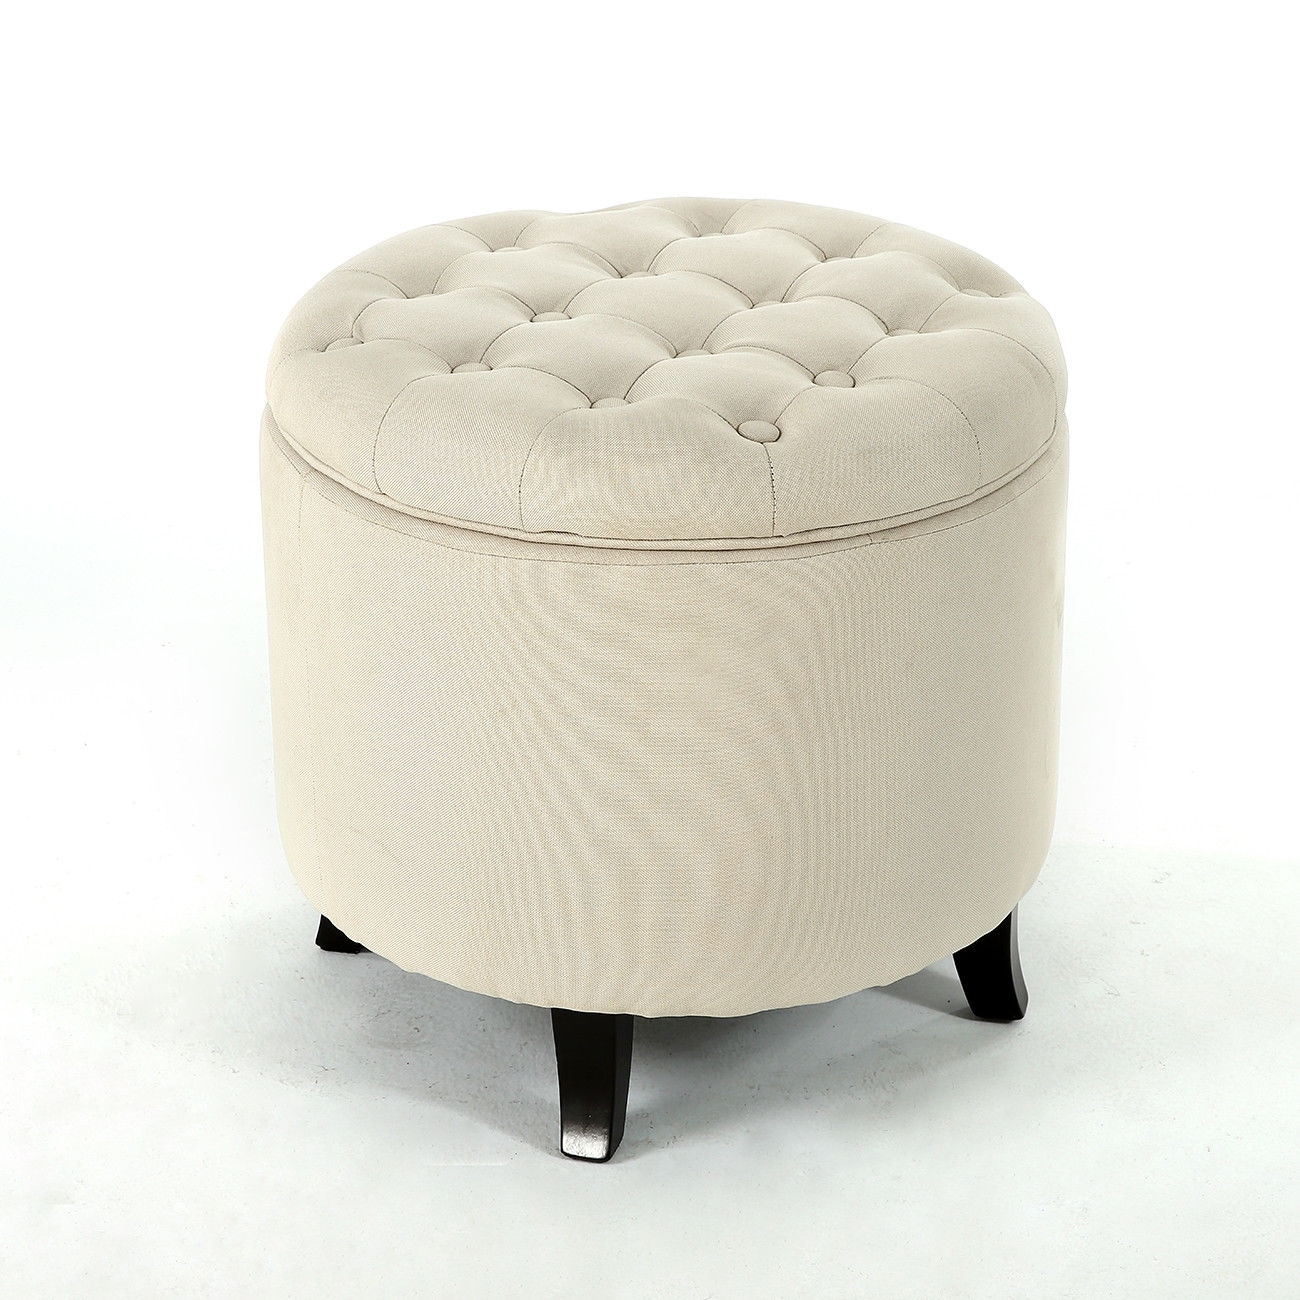 Elegant Fabric Tufted Button Ottoman Round Footstool Coffee Table With Regard To Round Button Tufted Coffee Tables (Photo 22 of 30)